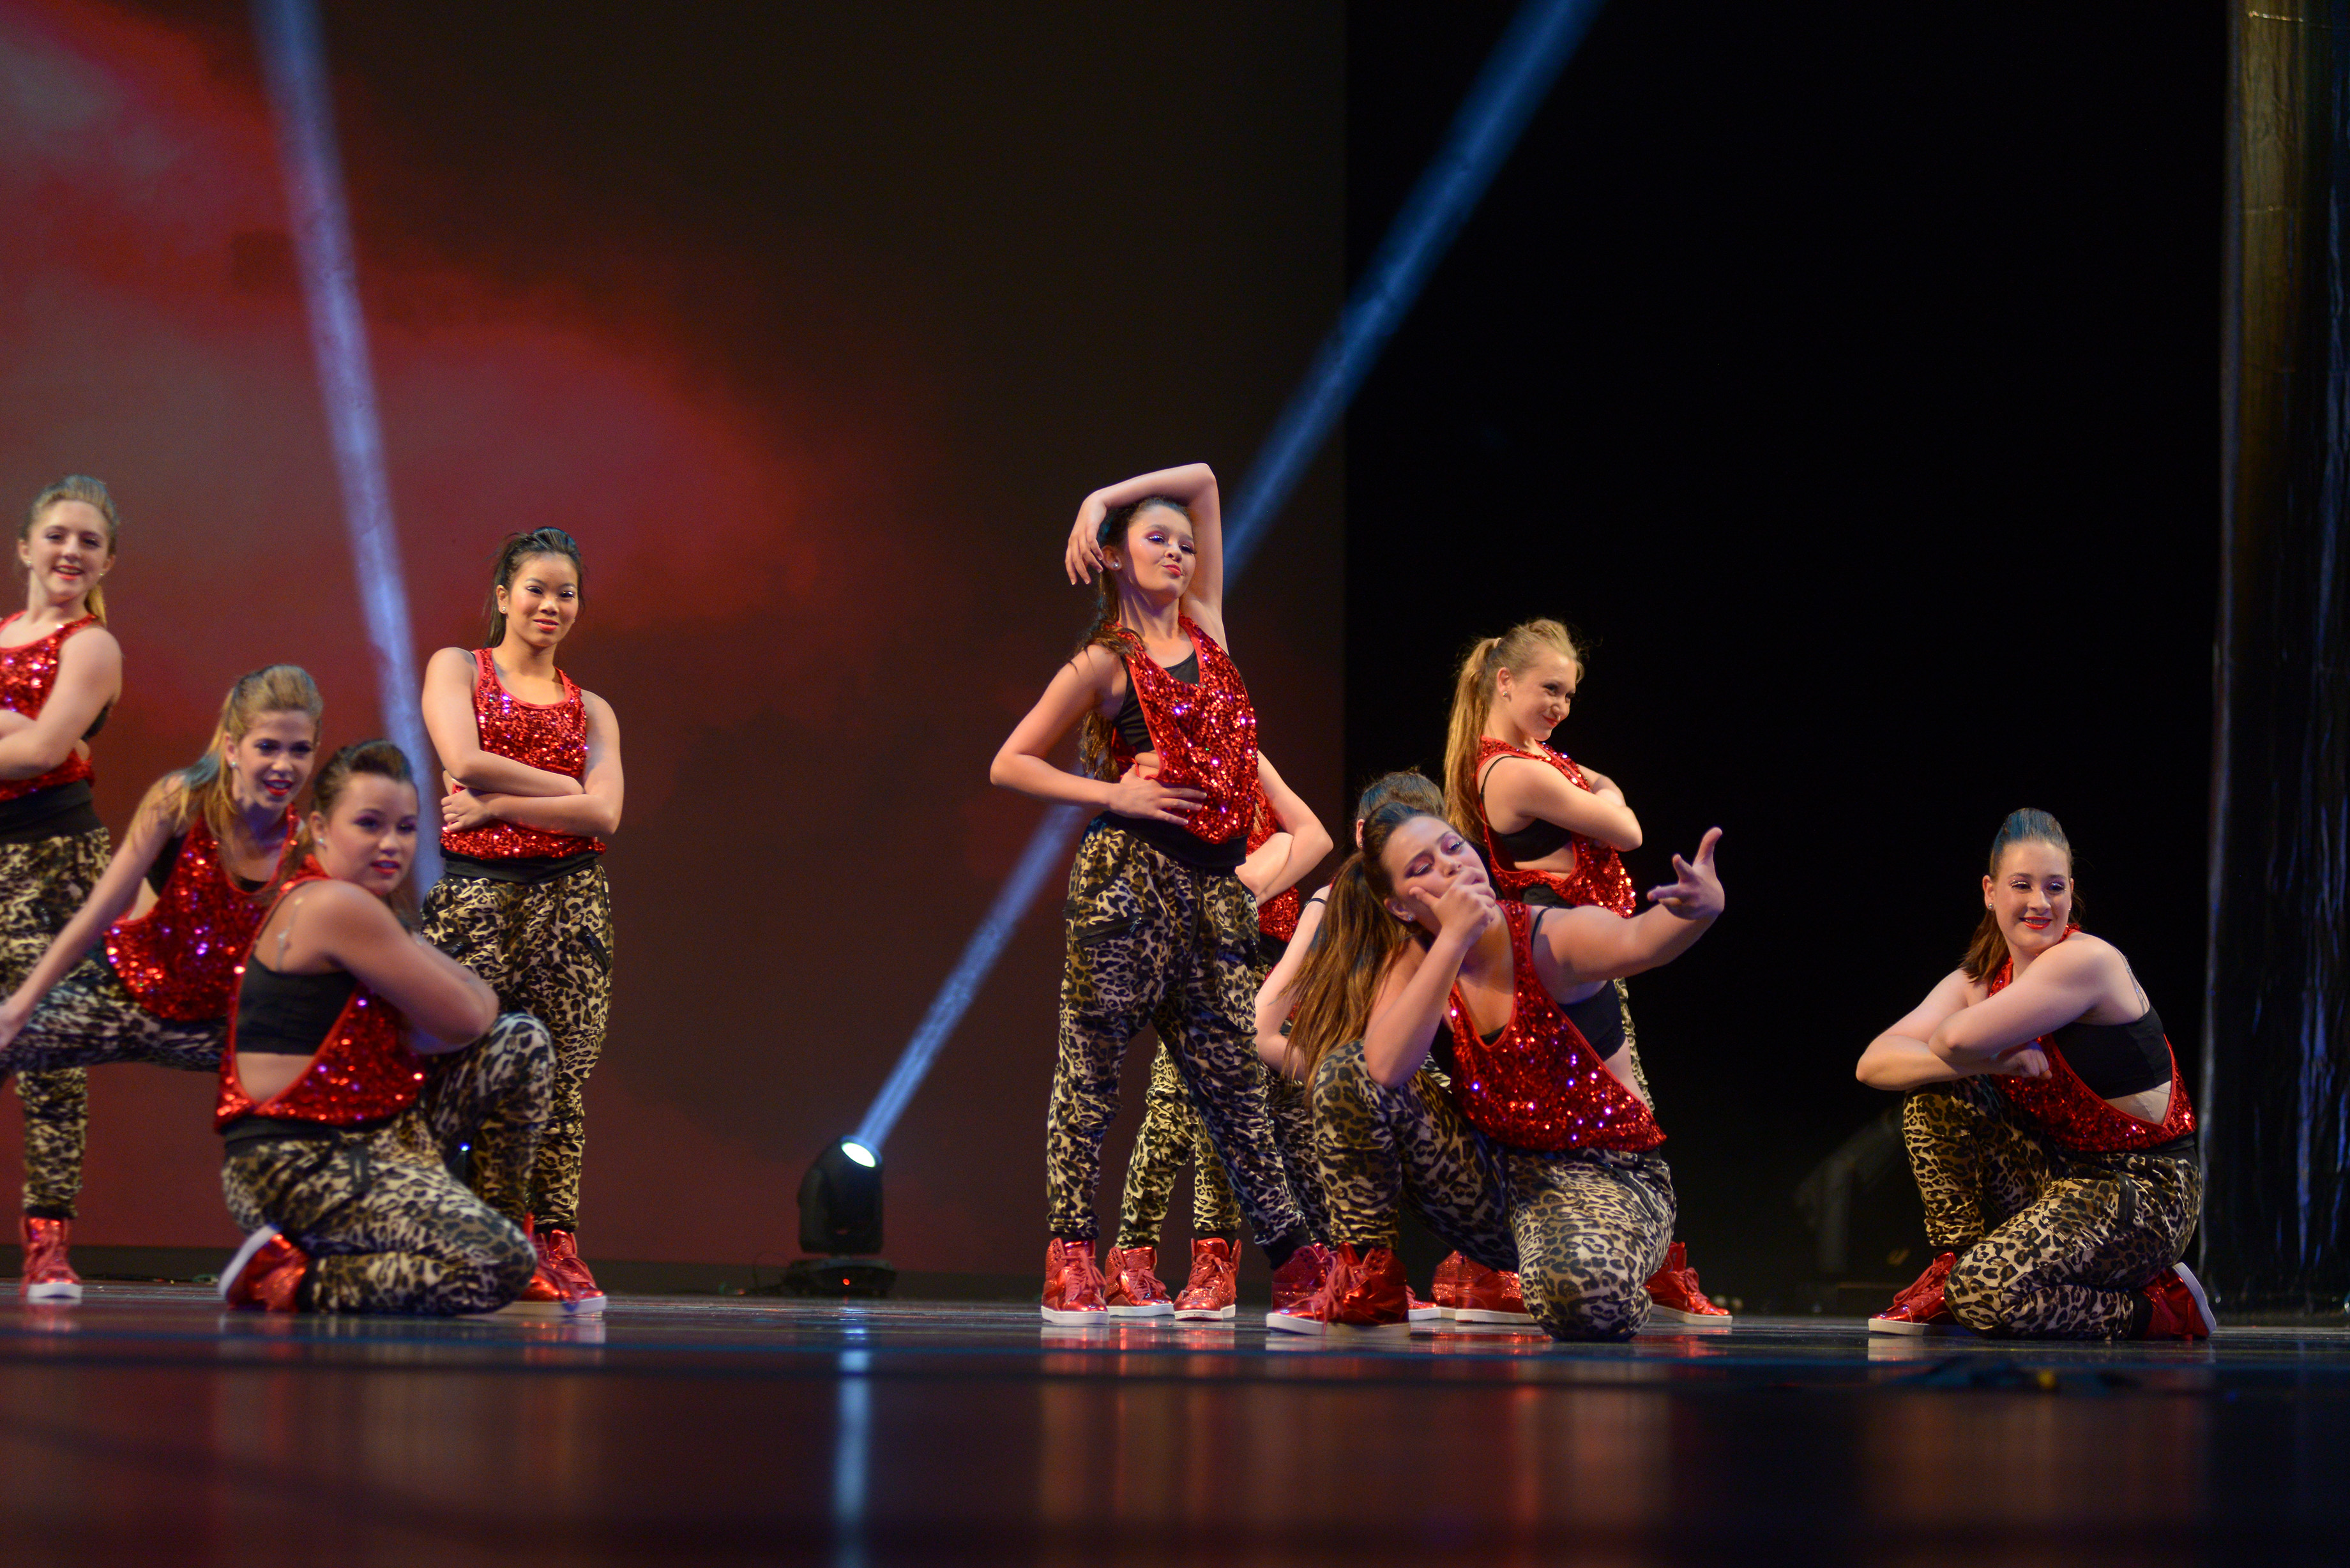 Bxp20160146hires Body Expressions Center Of Performing Arts